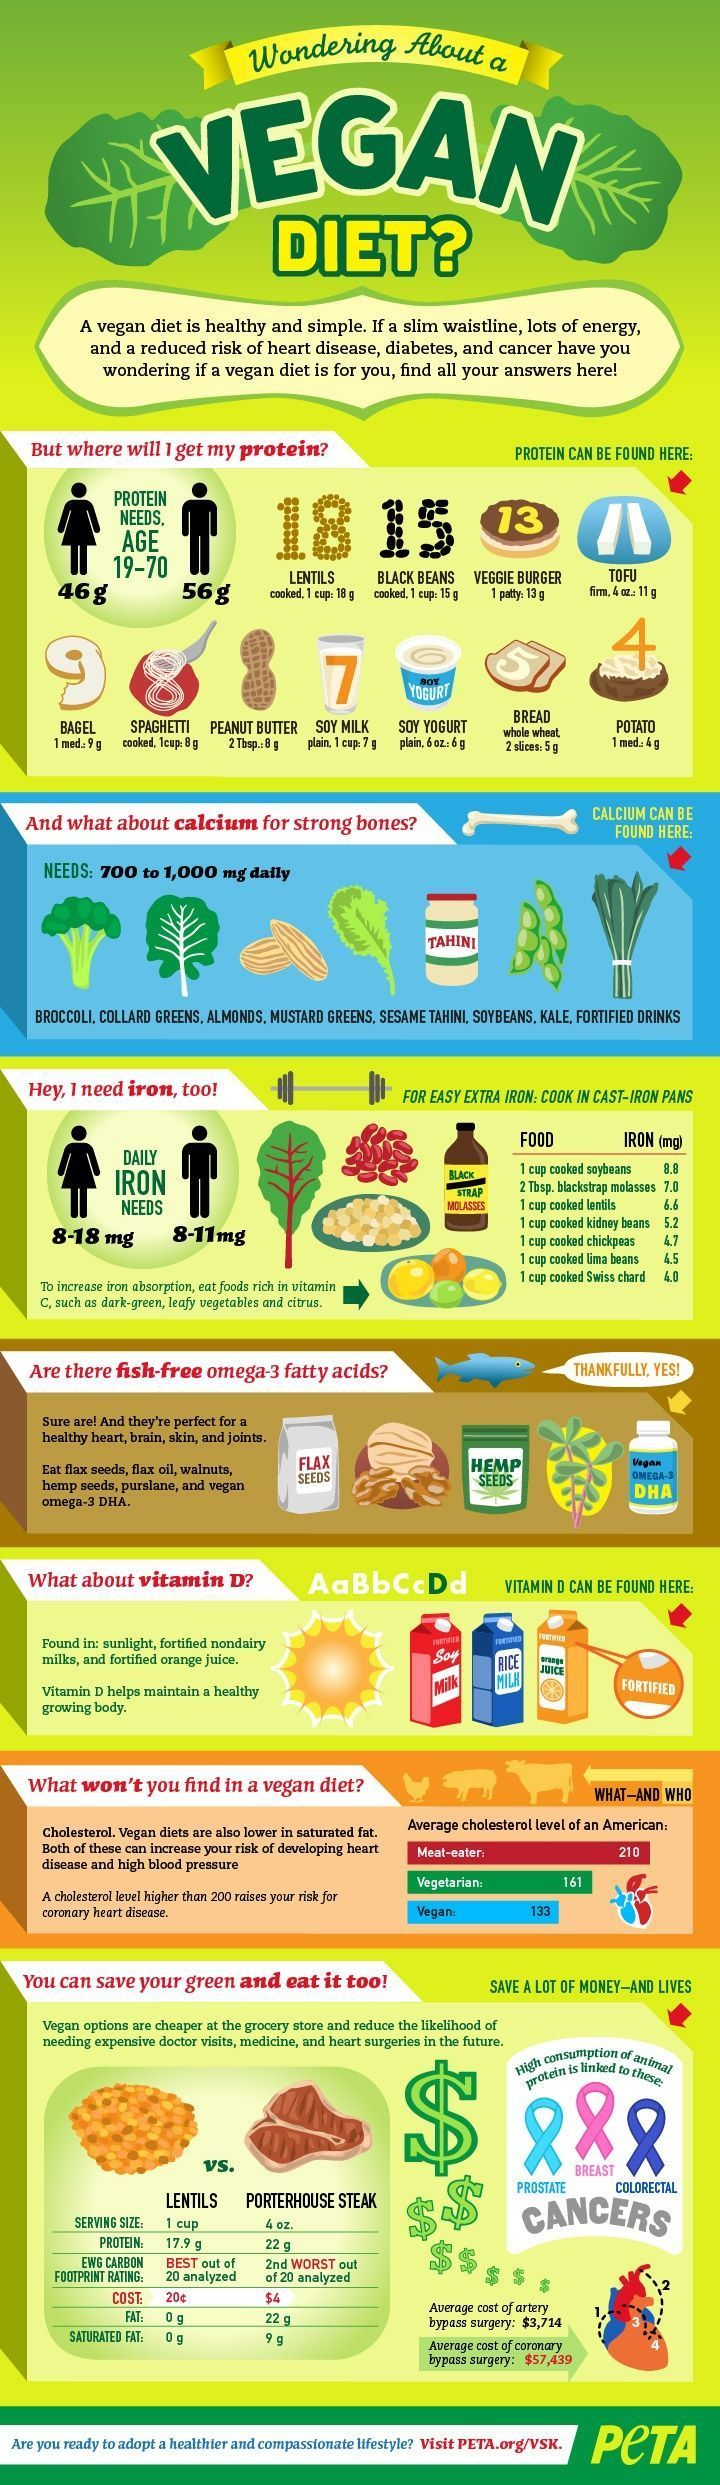 + B12, of course .. something that can be taken as vitamins or obtained from fortified foods and drinks.